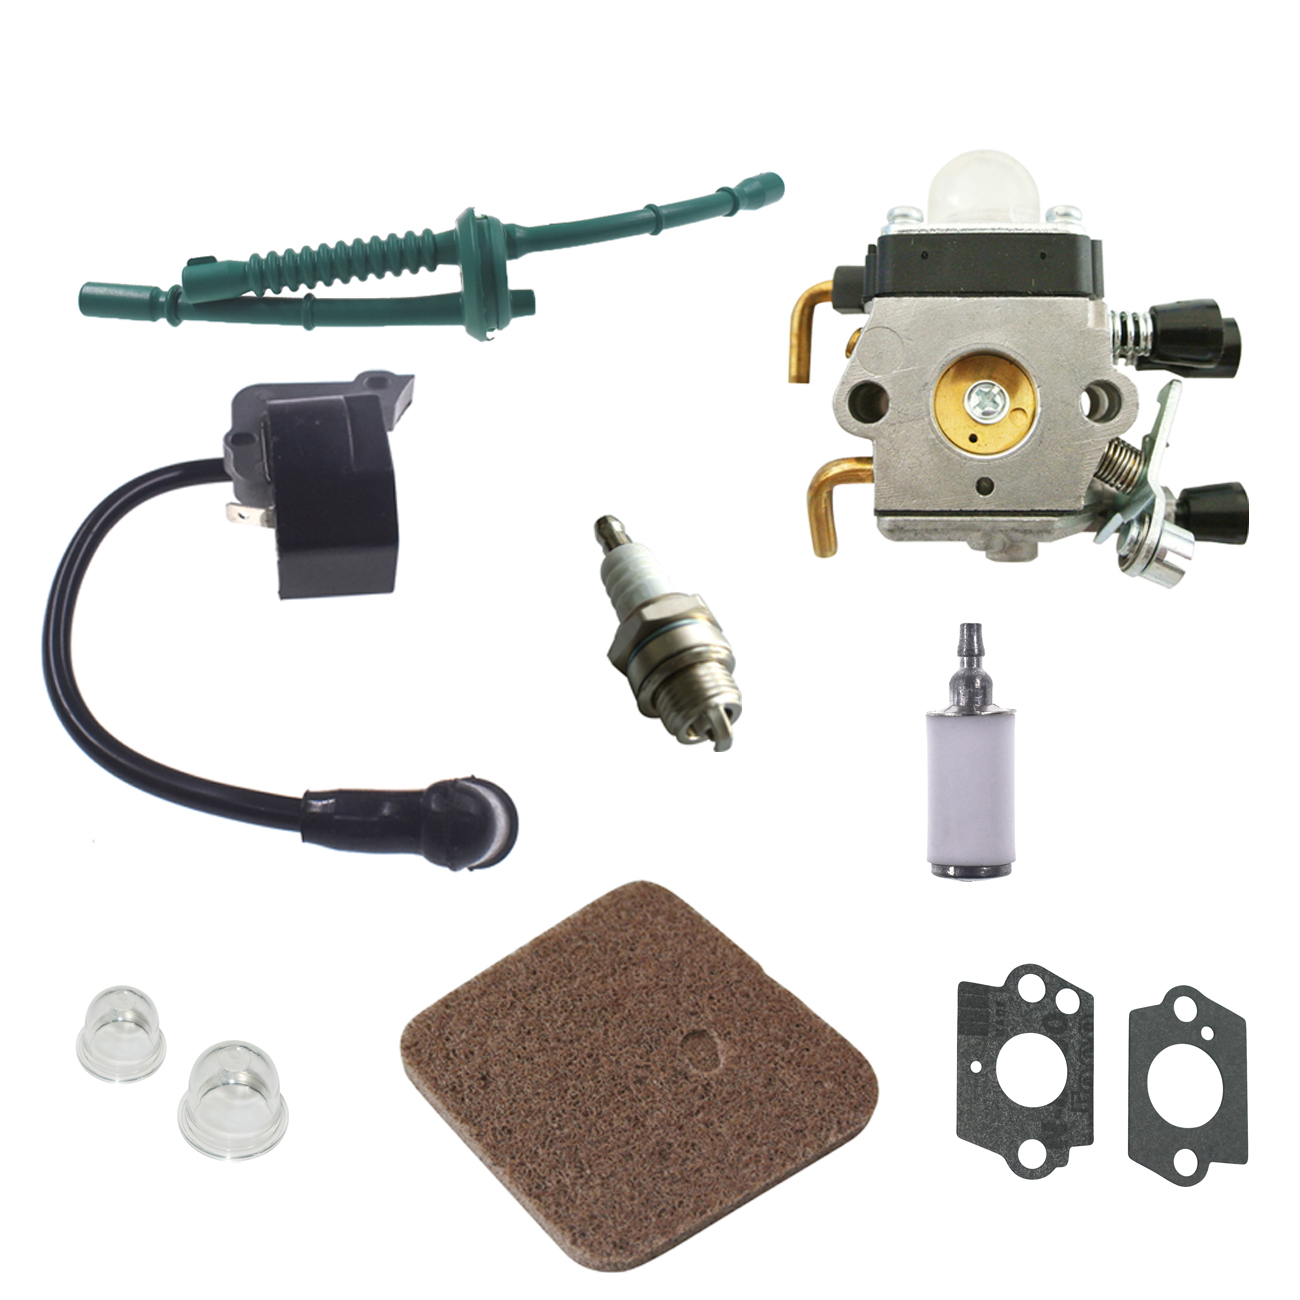 Ignition Coil Carb Spark Plug Fuel Air Filter Kit For STIHL FS38 FS45 FS46 FS55 KM55 Fuel Air Filter цены